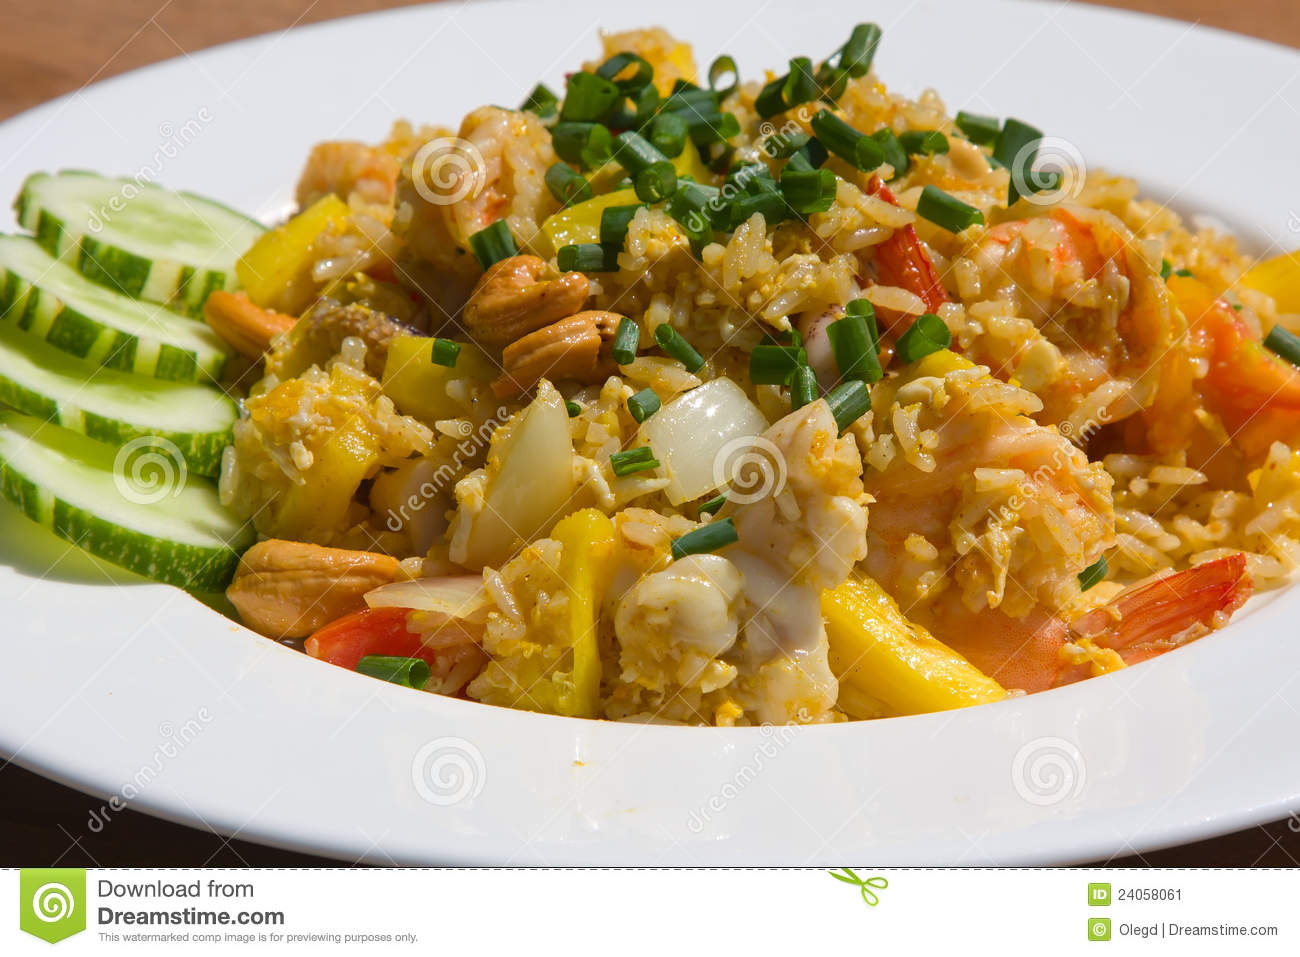 Thai Style Fried Rice Stock Image - Image: 24058061